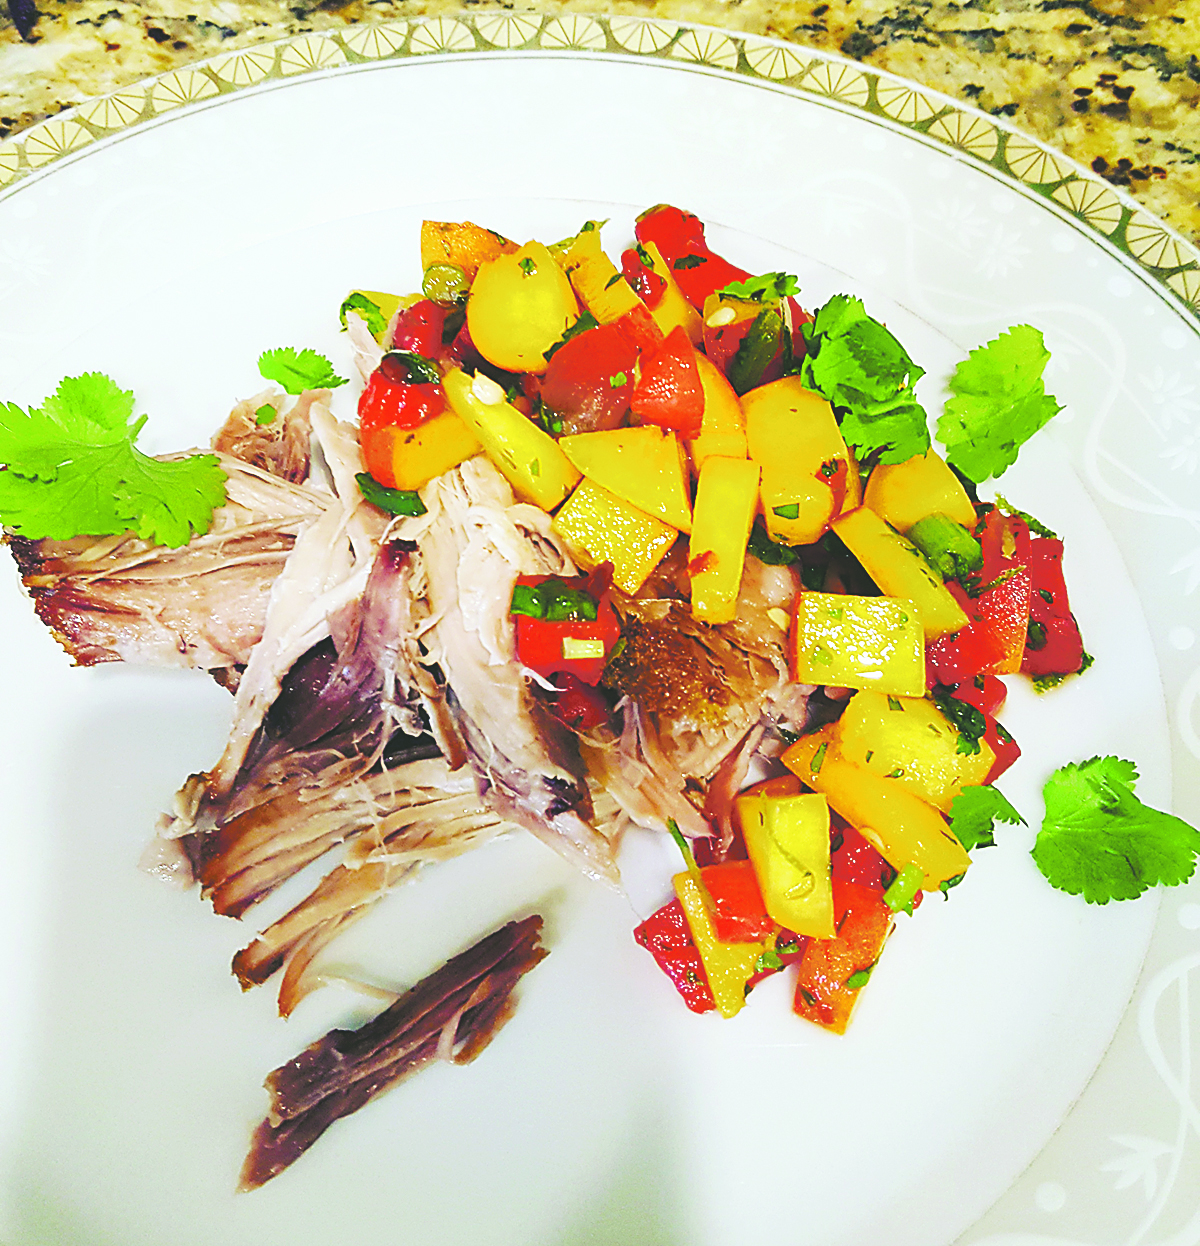 fnl-pantry-raiders-pork-with-melon-salsa-1705